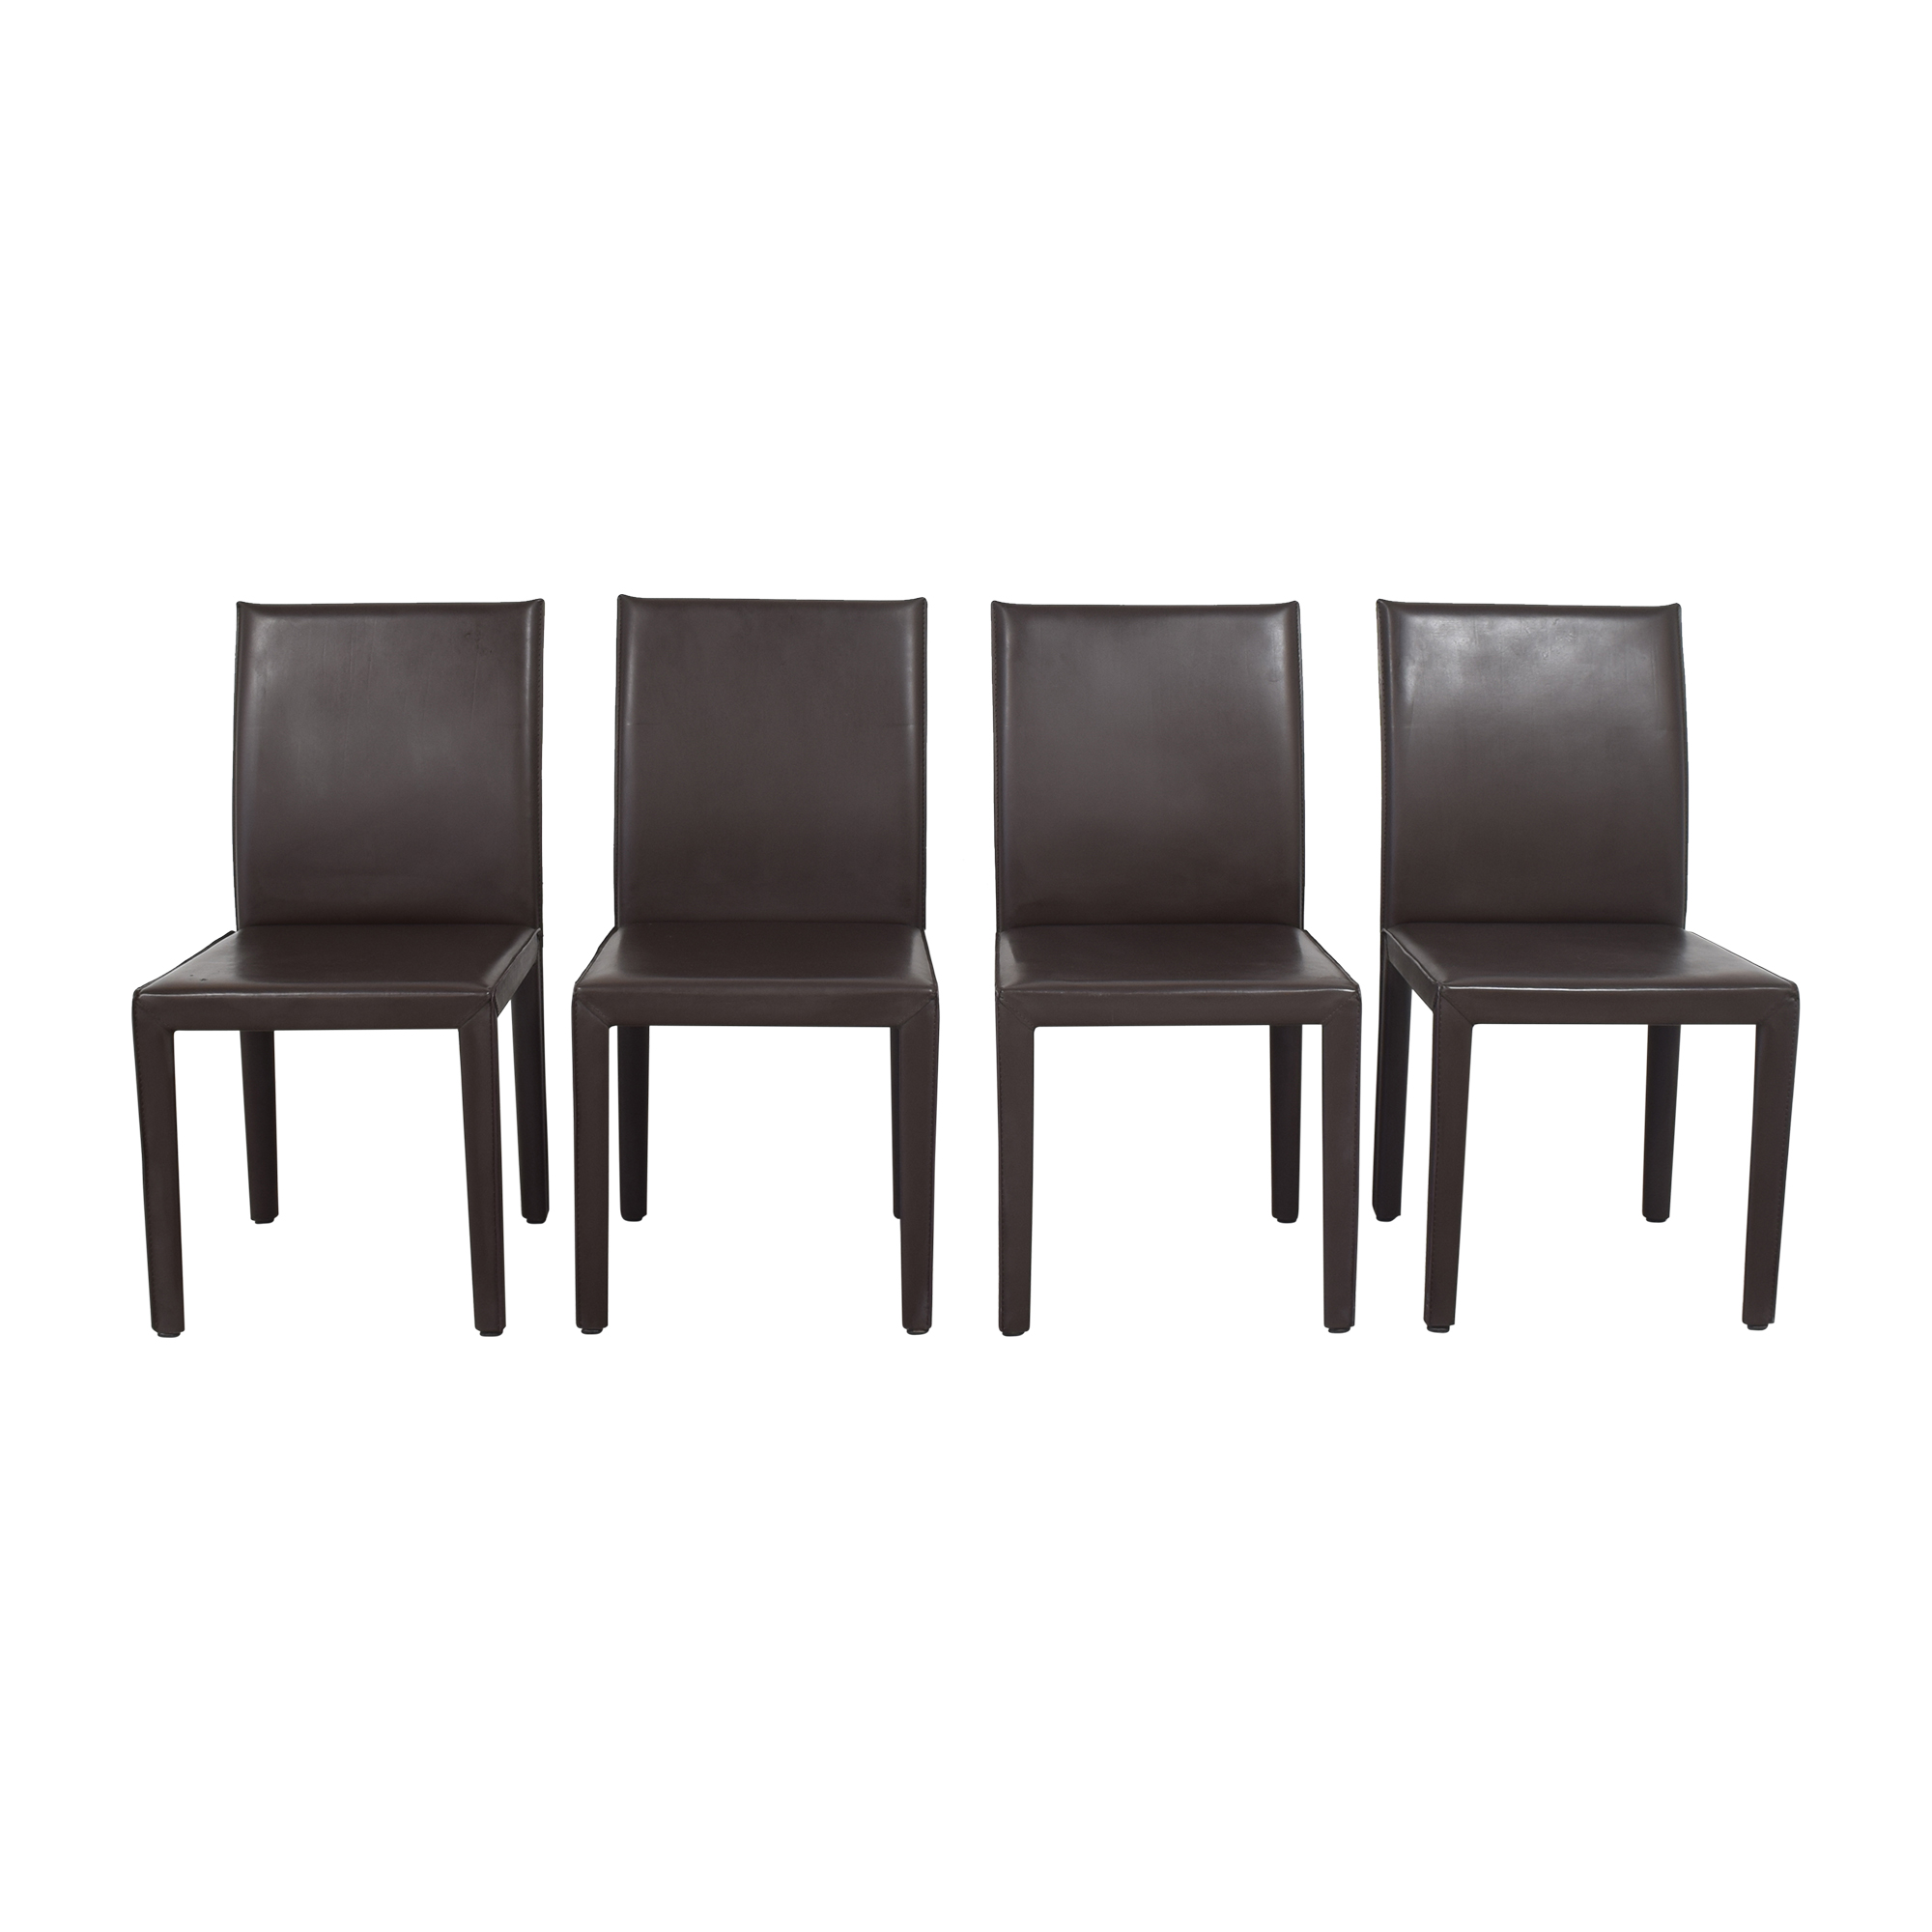 buy Crate & Barrel Folio Dining Chairs by Maria Yee Crate & Barrel Chairs